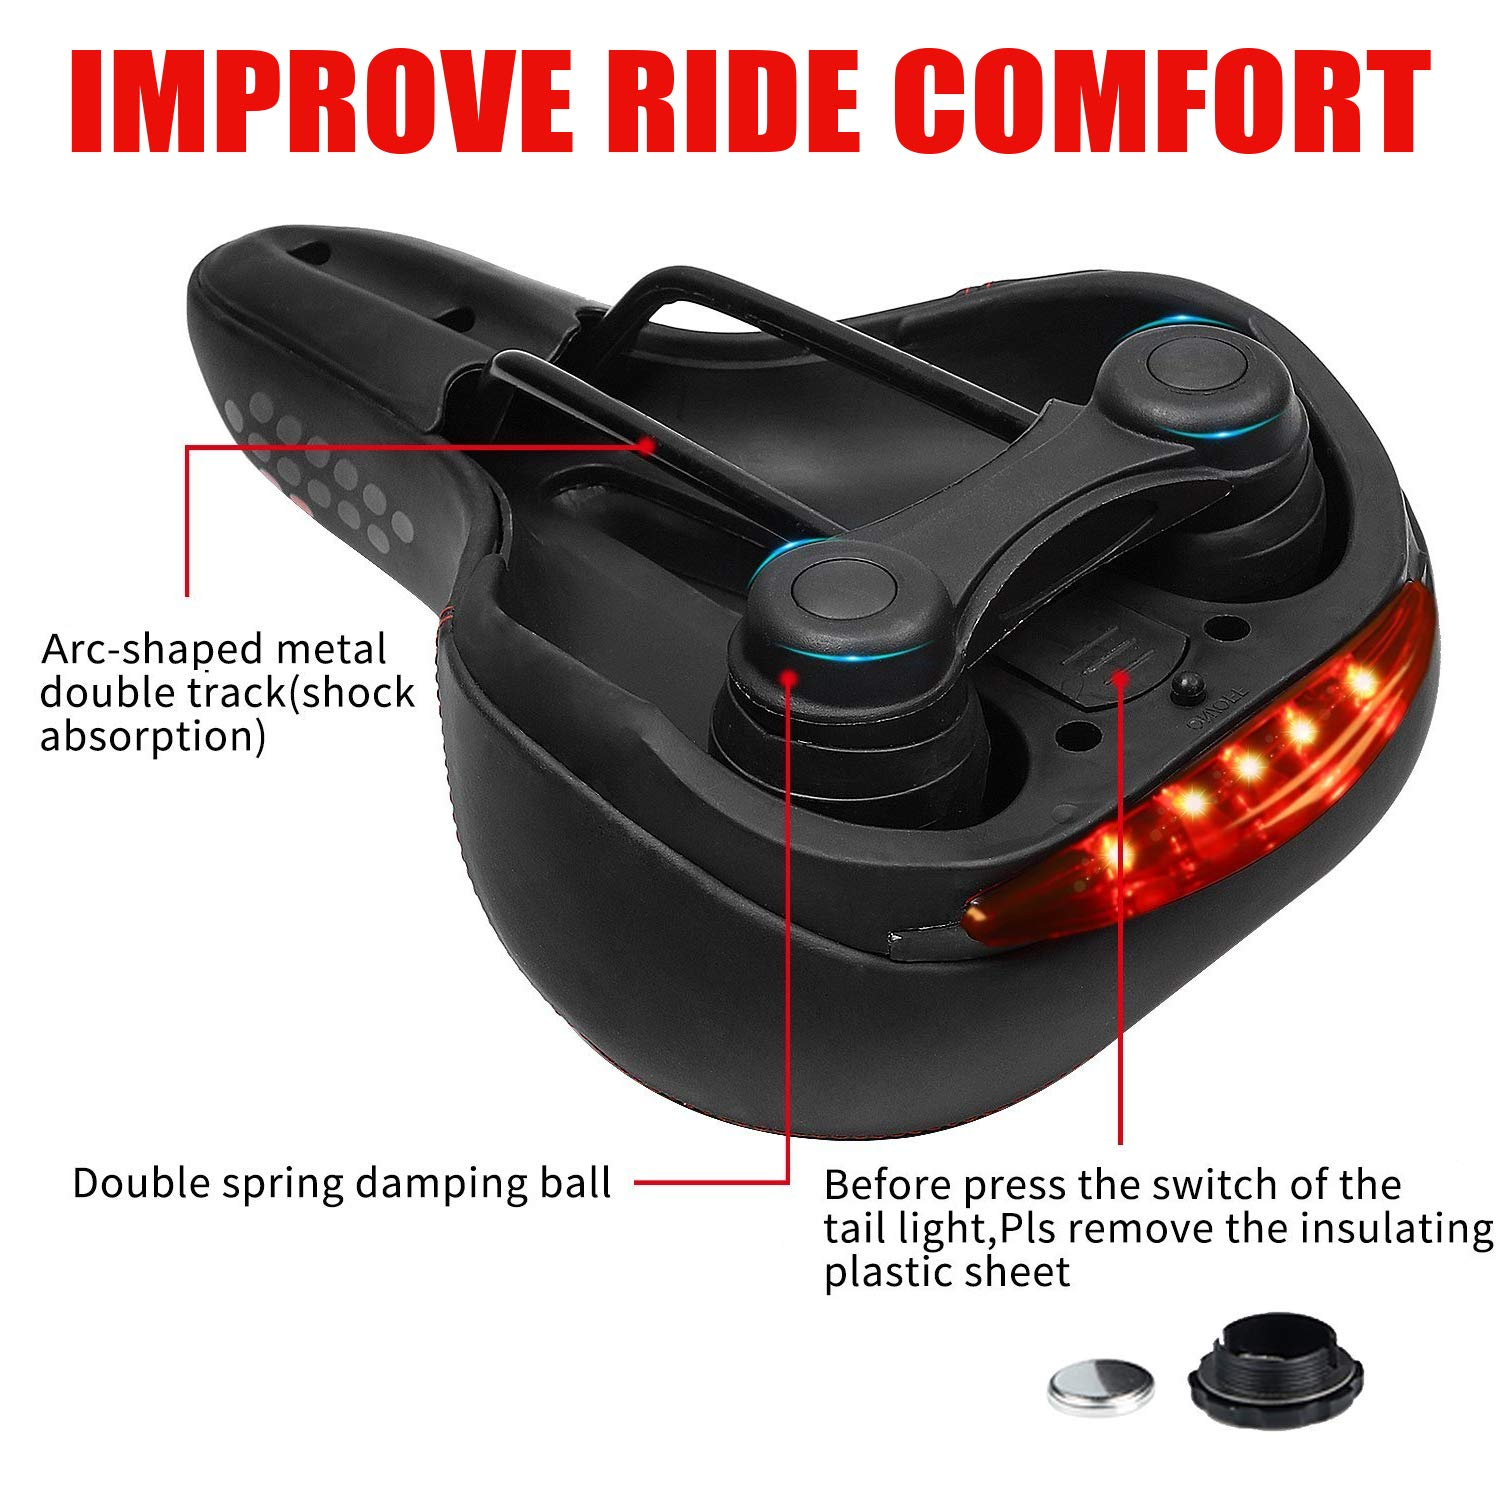 Royal Brands Comfortable Bike Seat Bicycle Saddle with Memory Foam Cushion and A Tail Light Dual Spring Design and Wide Soft Padded Leather Cushion